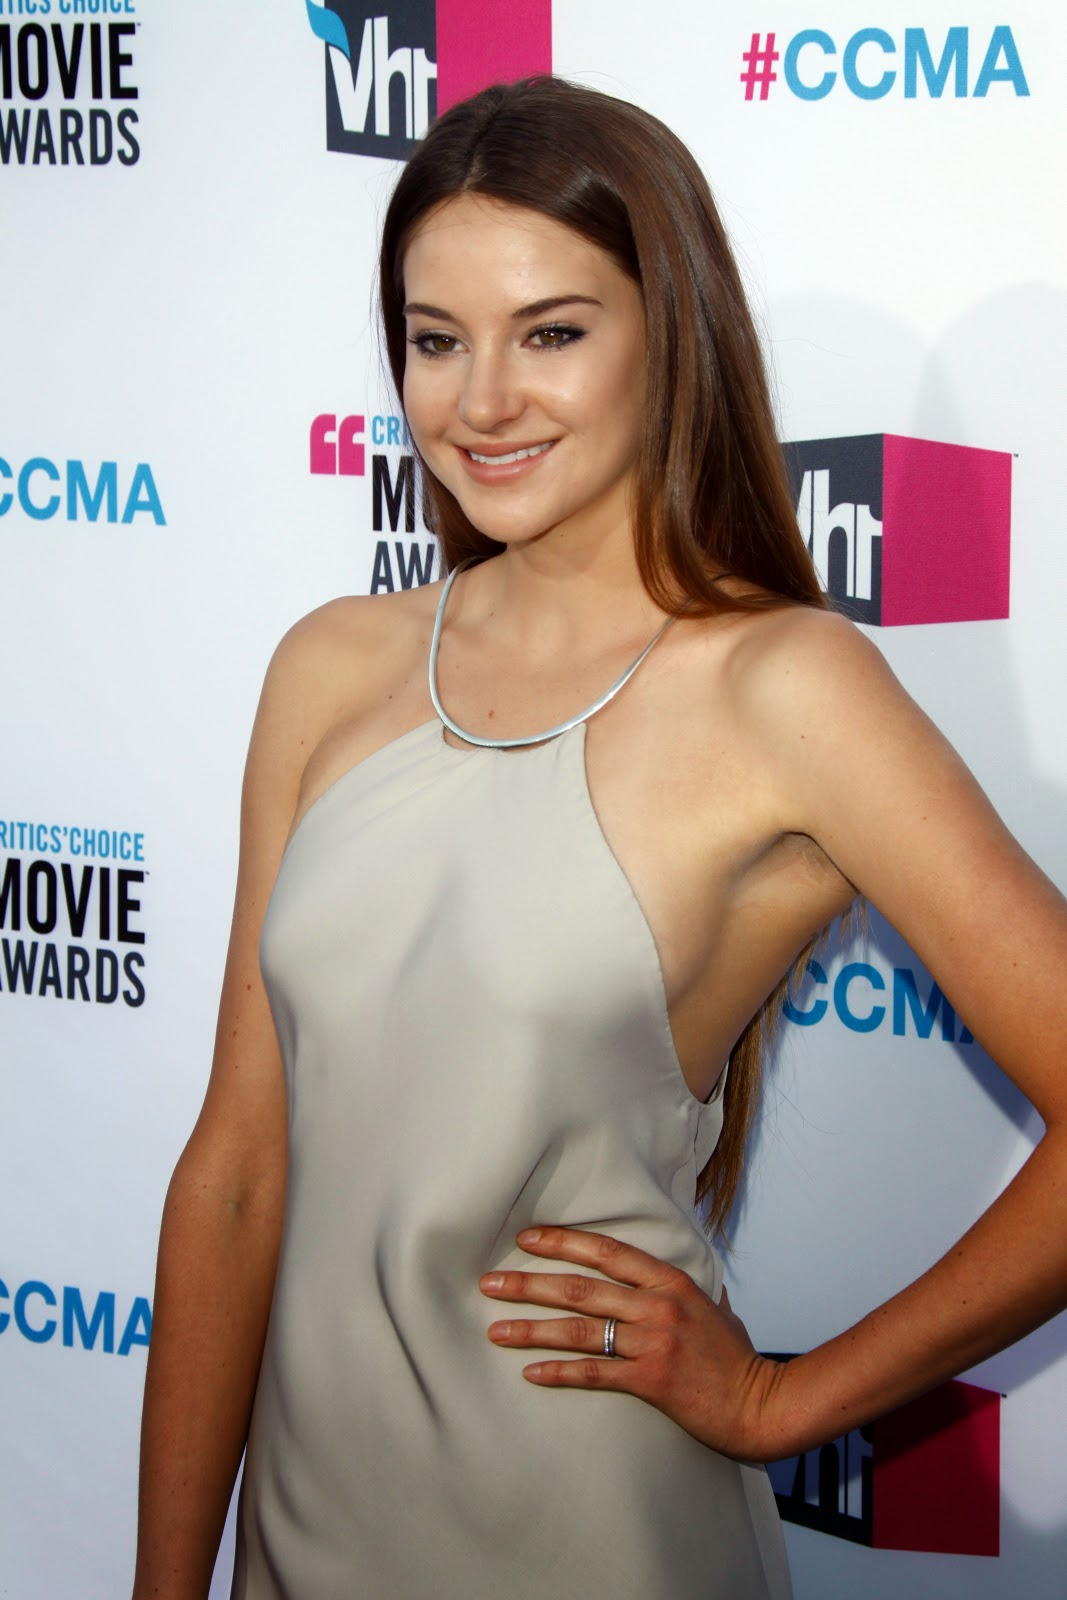 Film Actress Hd Wallpapers Shailene Diann Woodley Hd Pictures Hd Hd Wallpapers Of